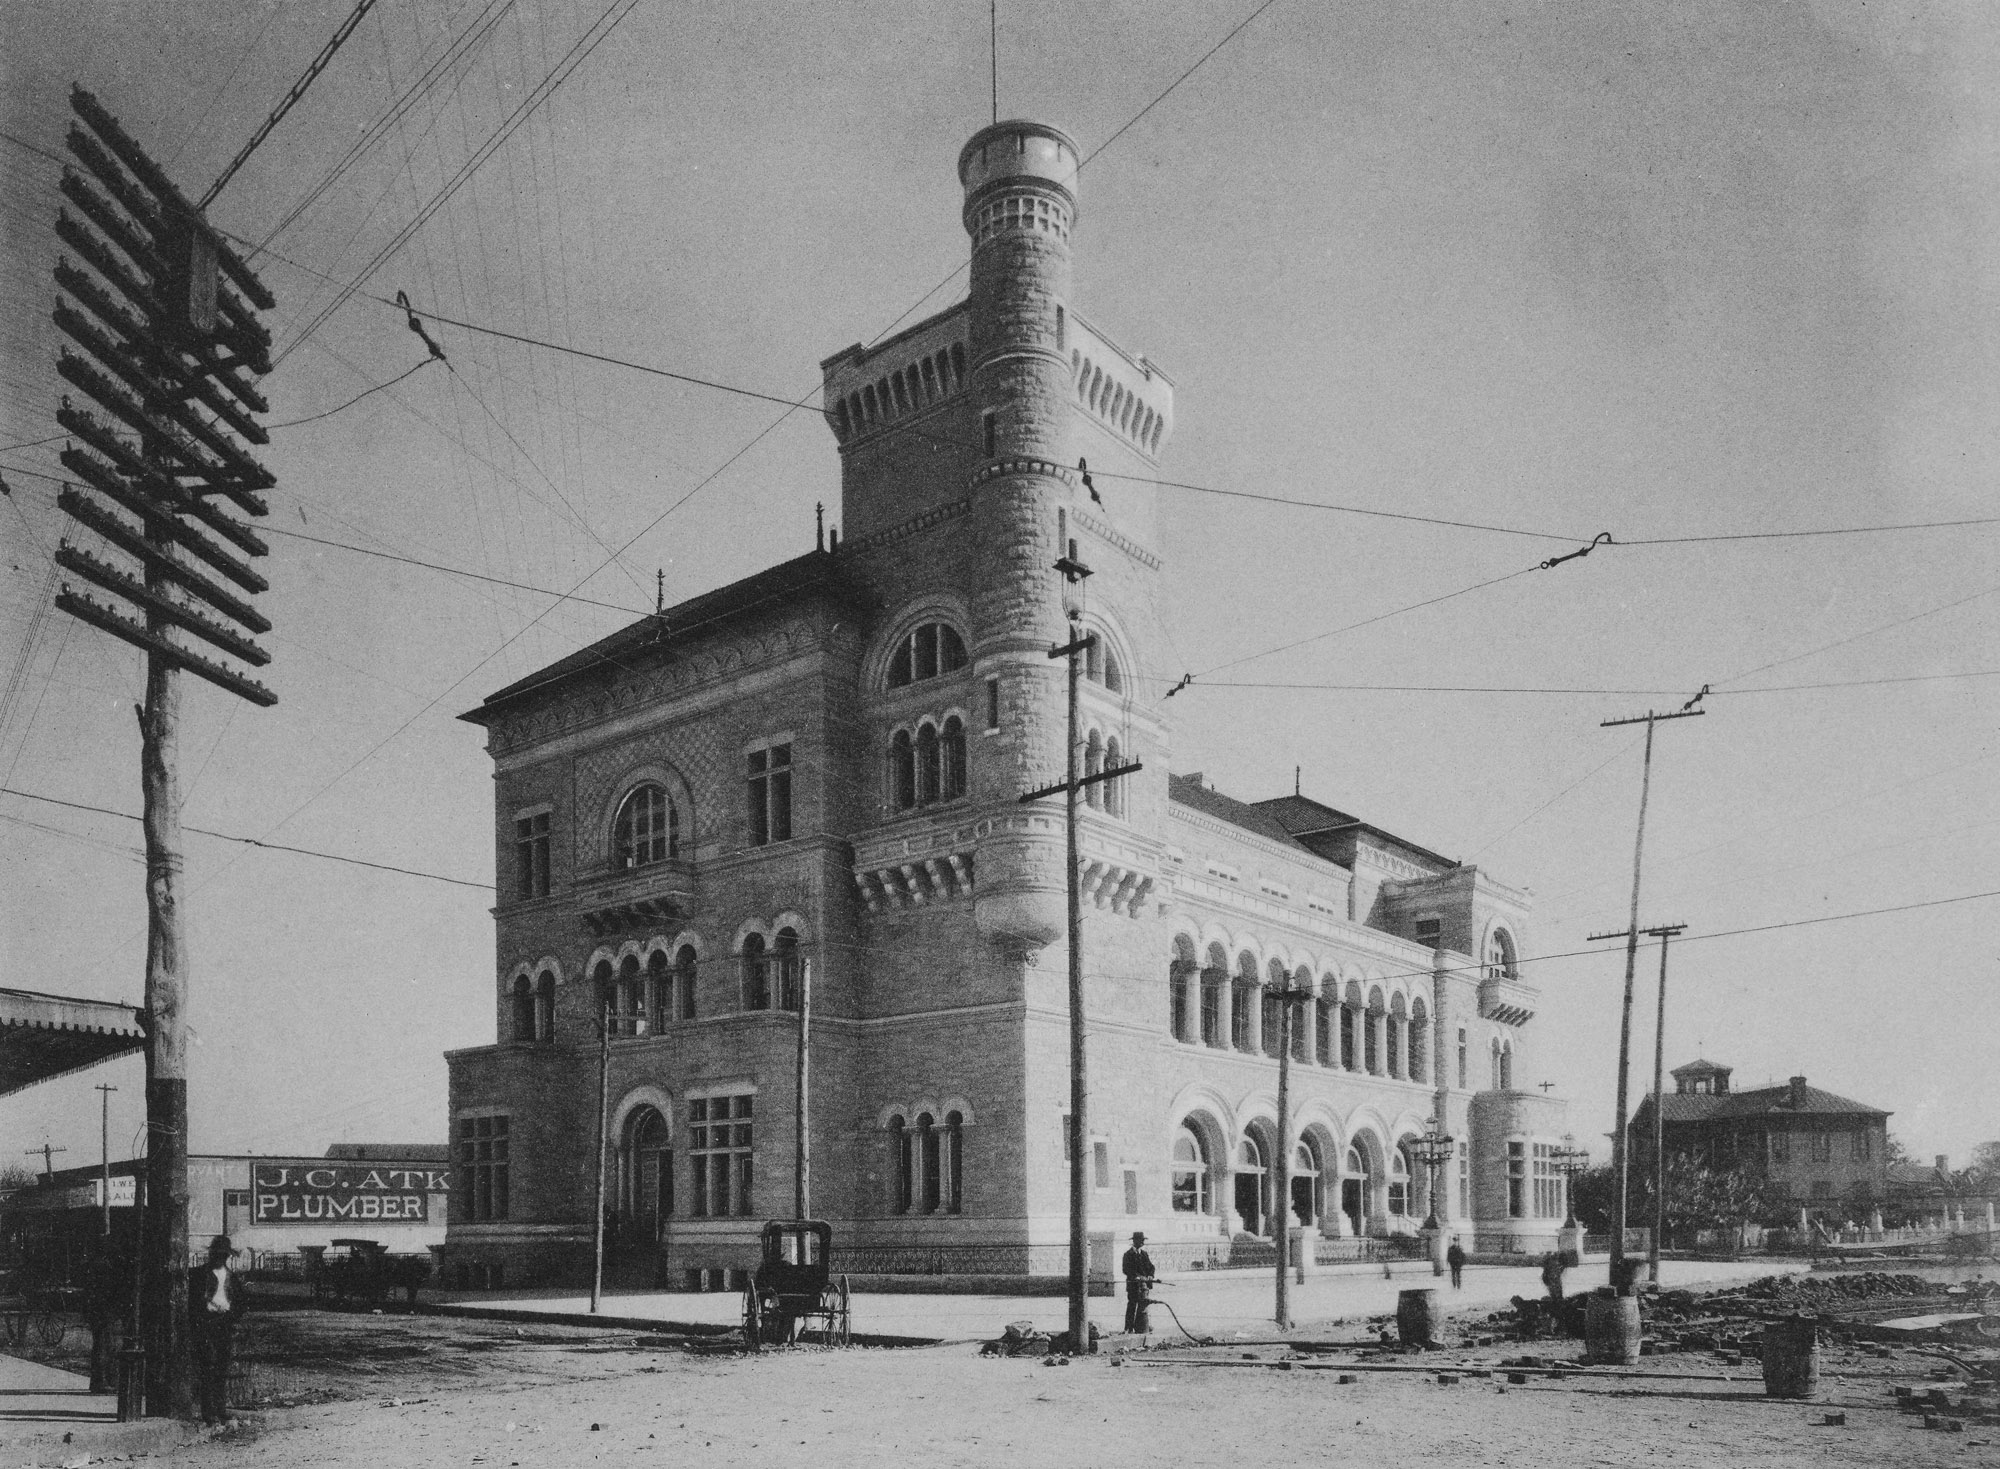 1892 U.S. Courthouse and Post Office. Photo courtesy the Albertype Company.